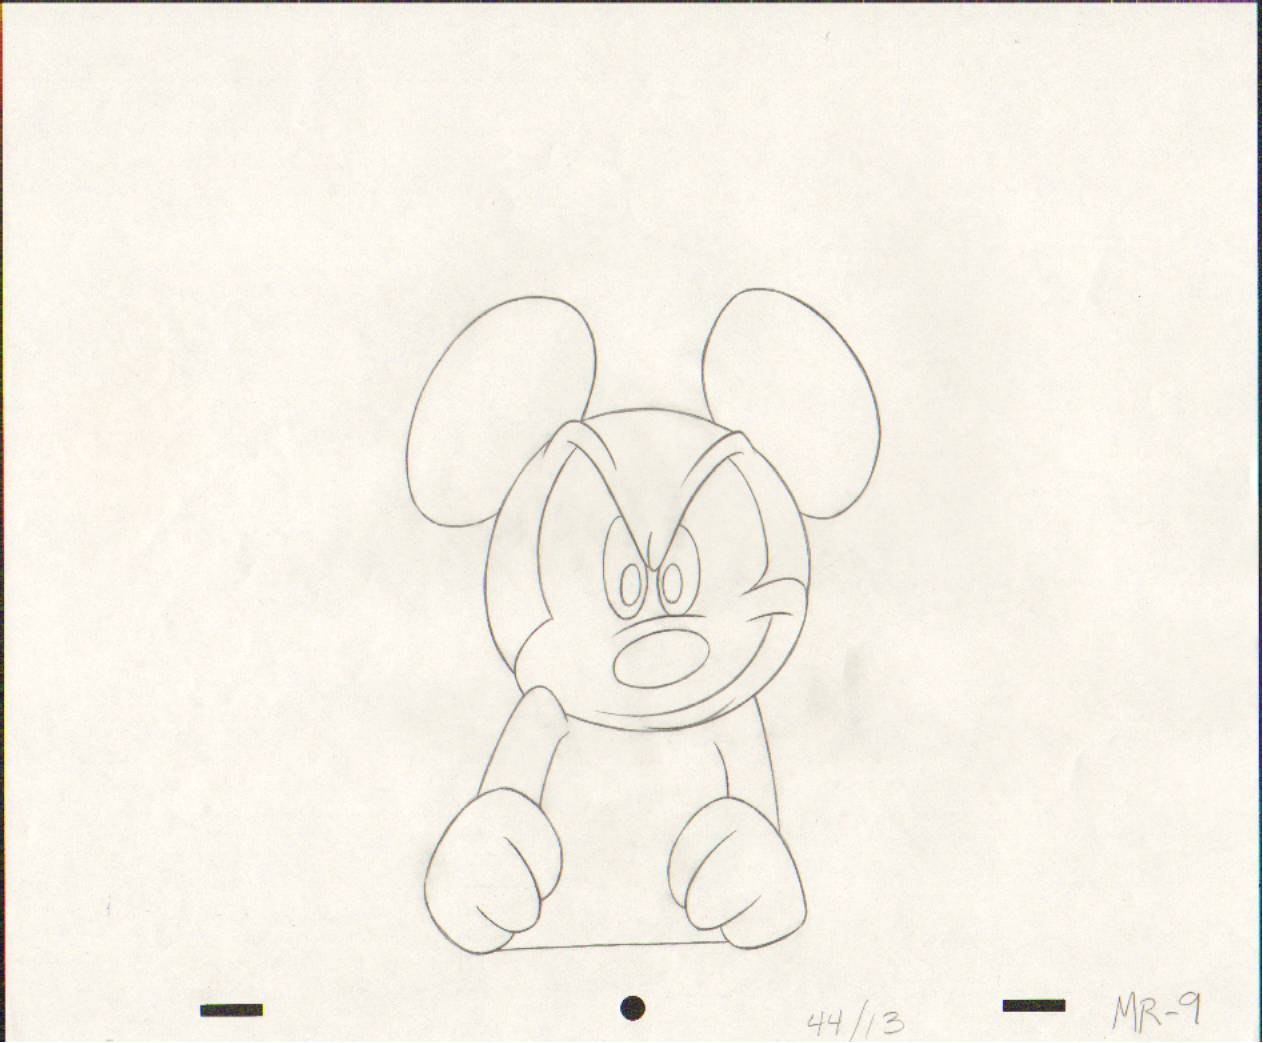 Original Mickey 老鼠, 鼠标 Production Drawing